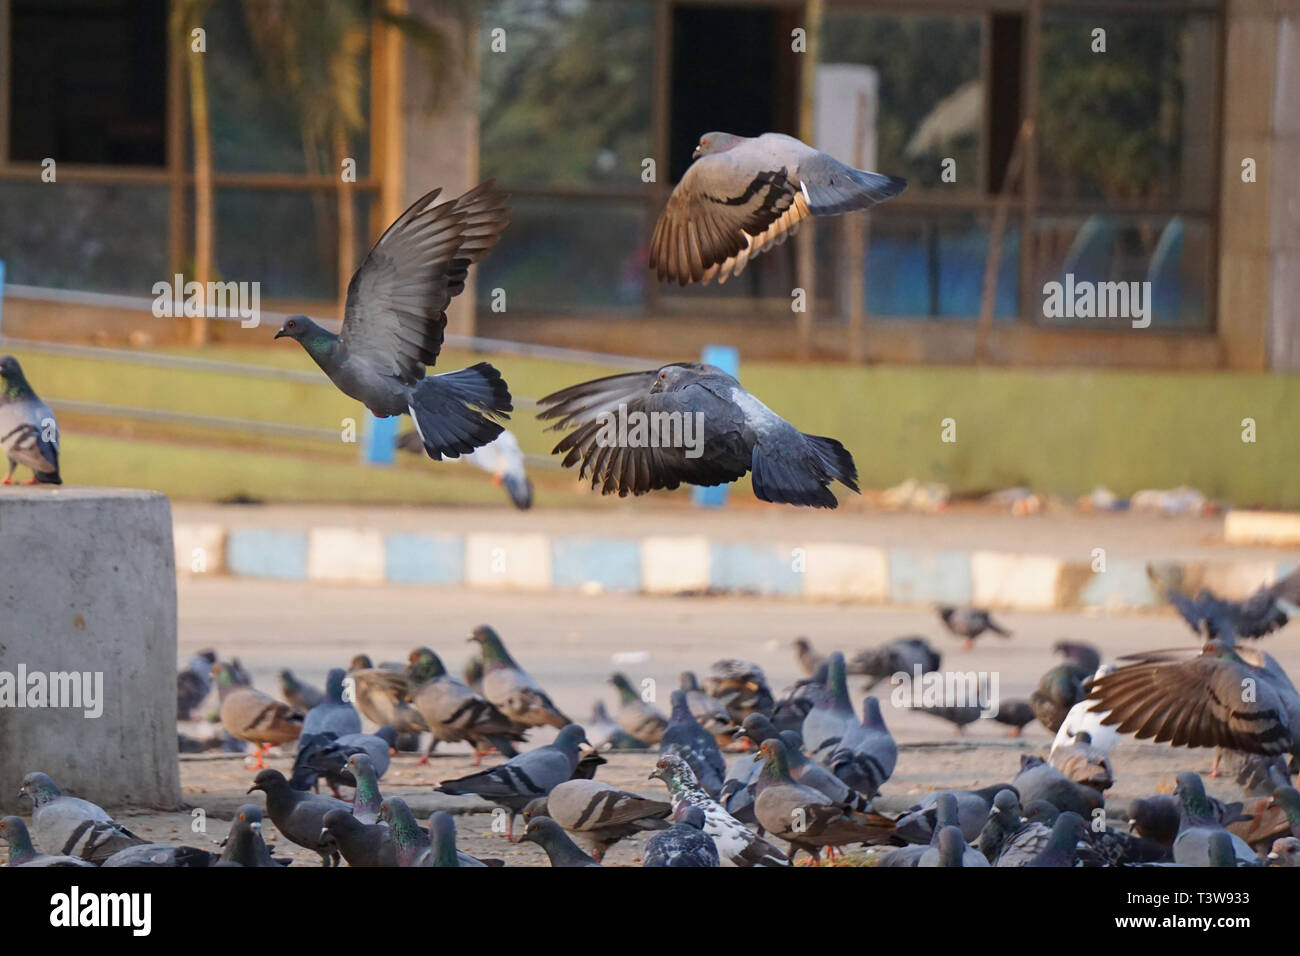 Three Pigeons flying and many pigeons sitting on the ground - Stock Image